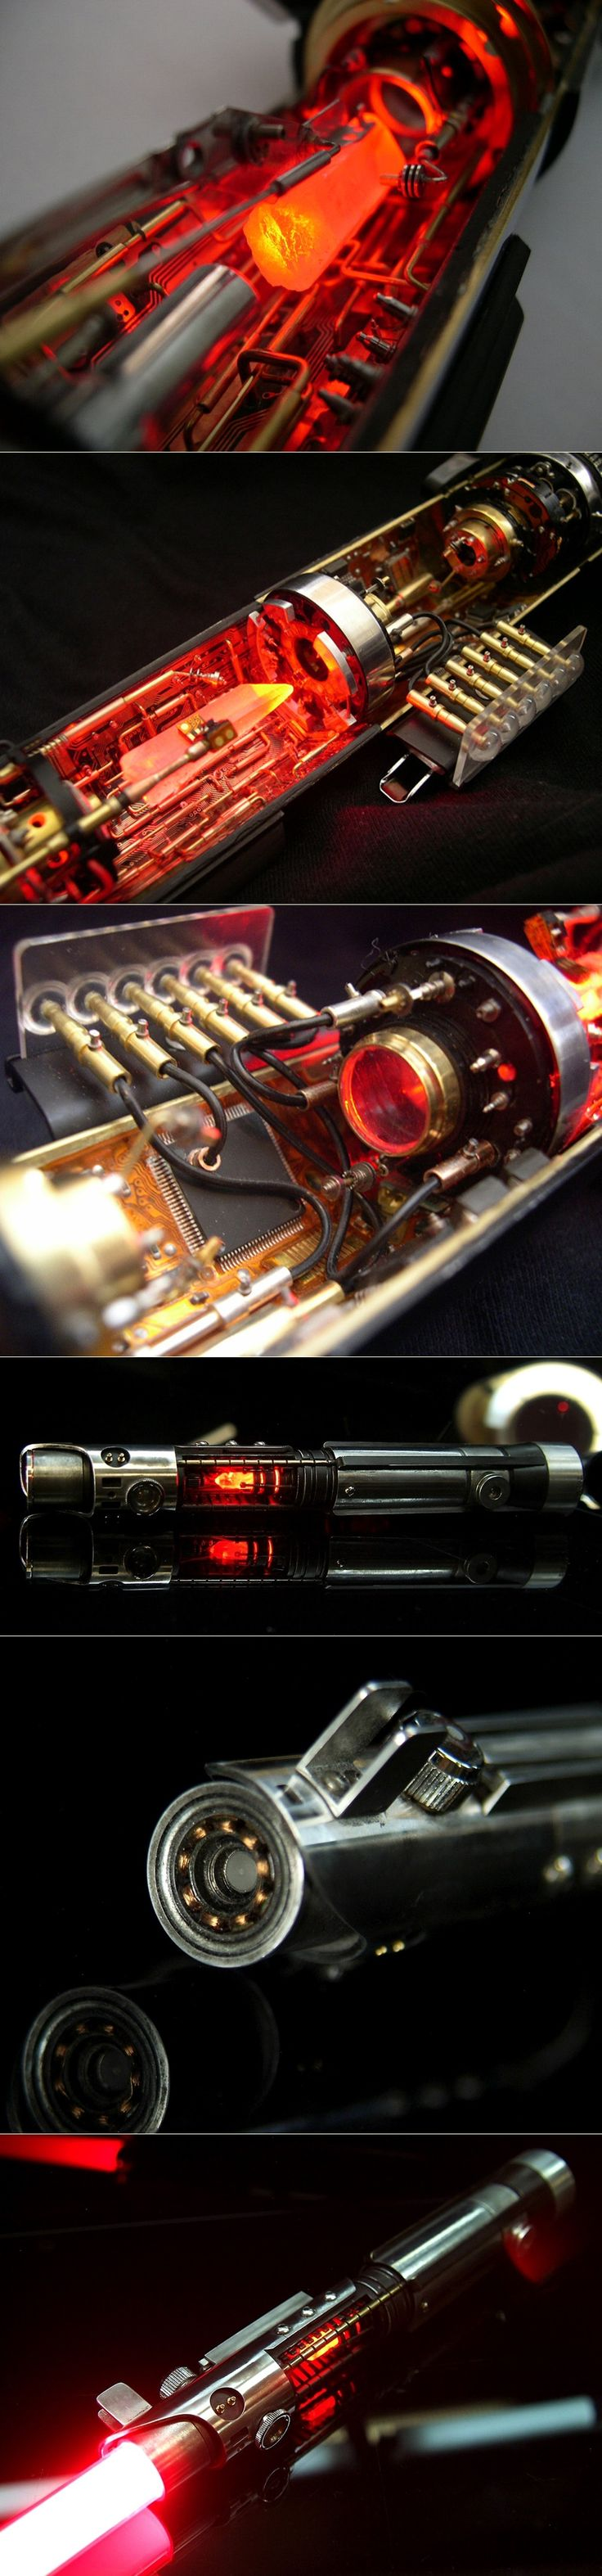 """Inside of a """"real"""" lightsaber (prototype)"""